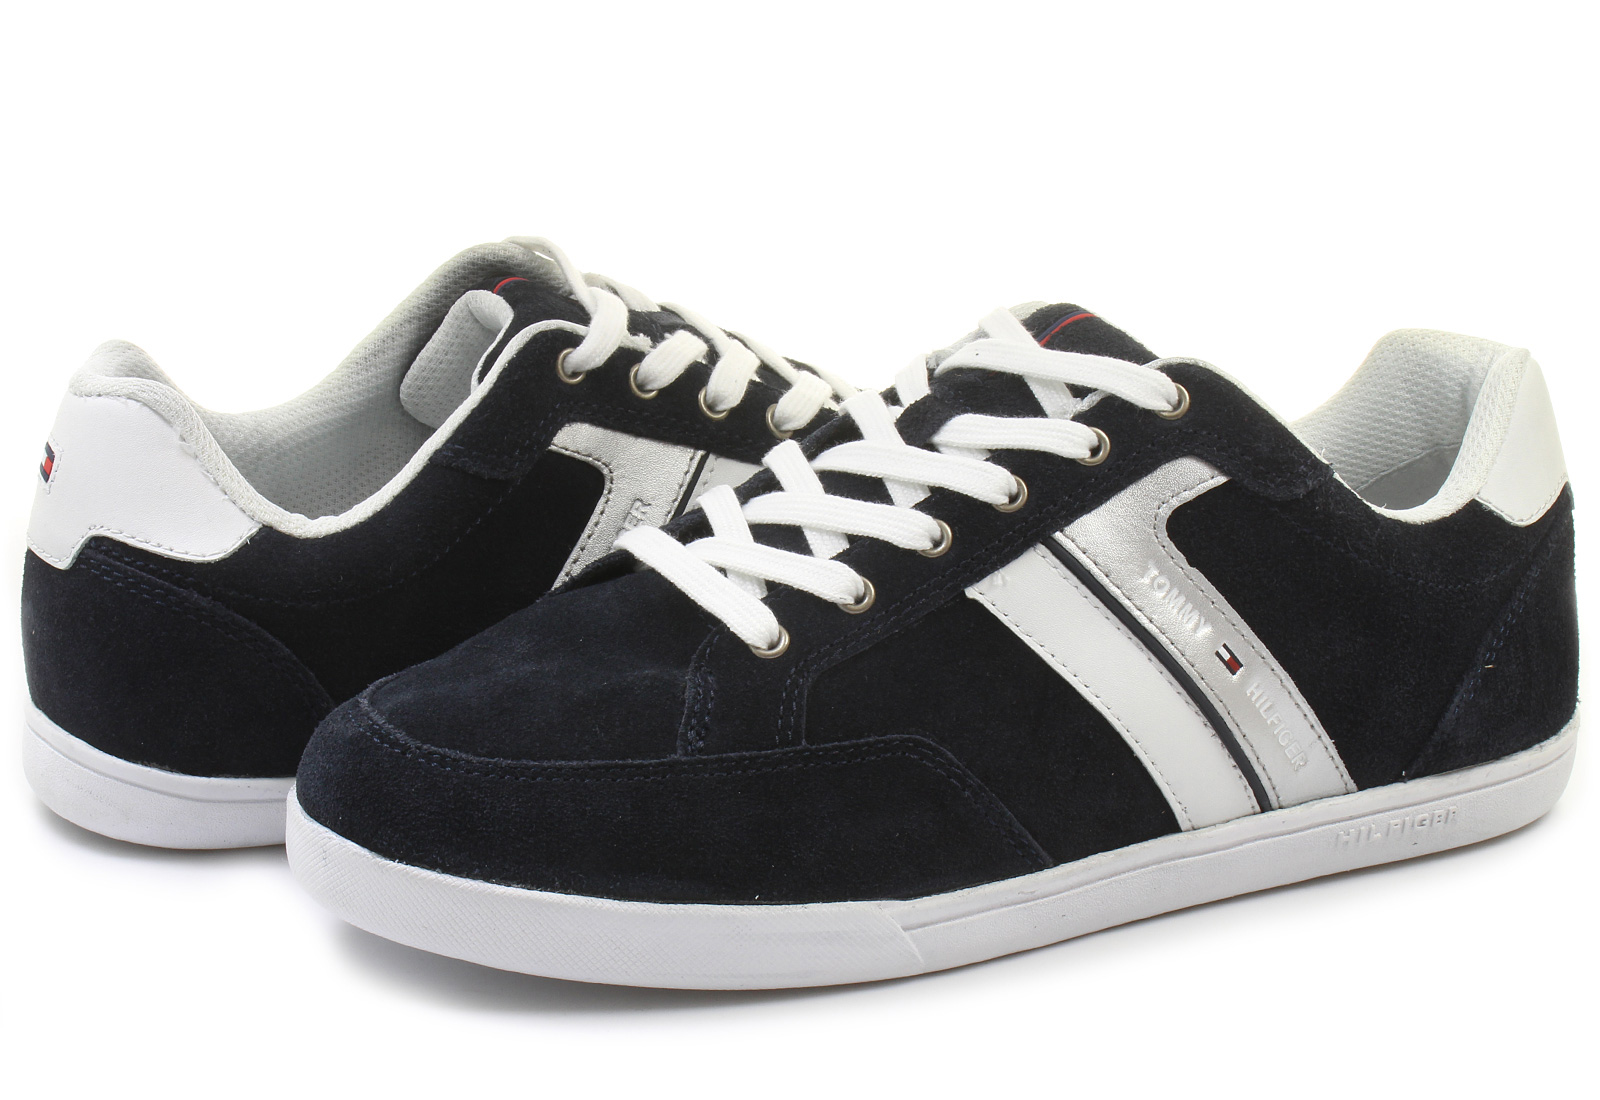 Tommy Hilfiger Shoes Rickey 6b 14S 6980 403 Online